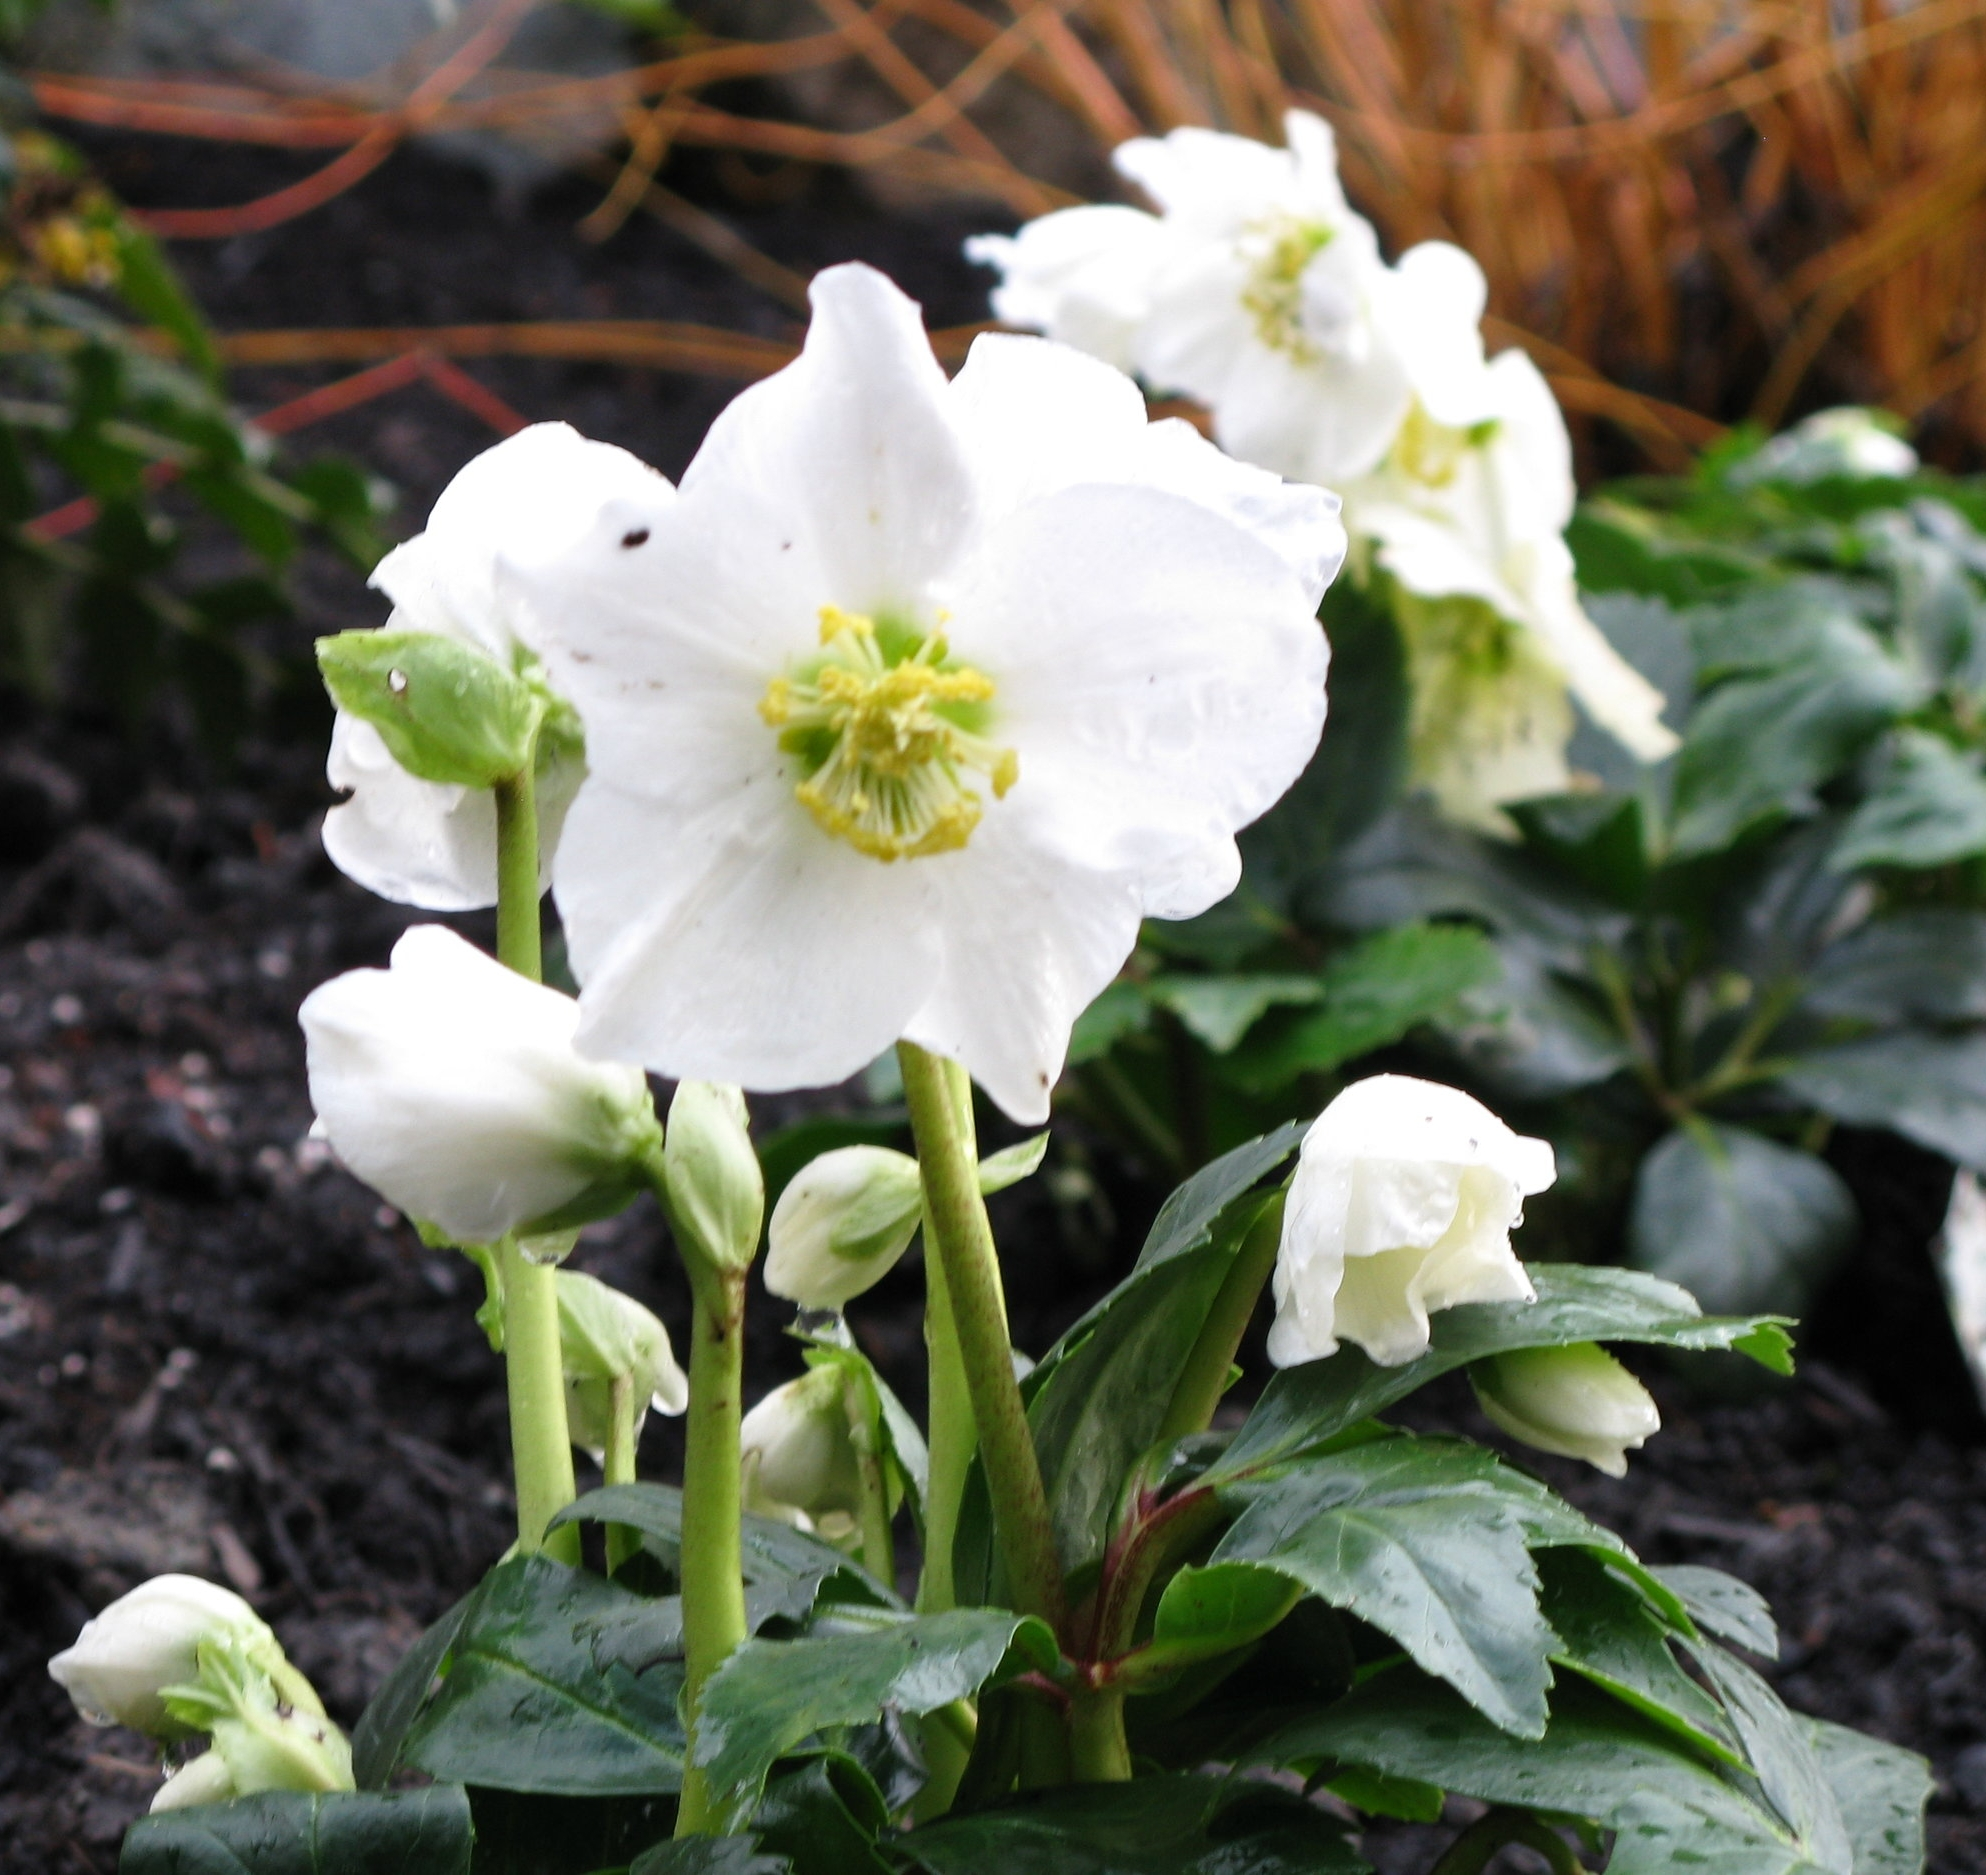 The pure white flowers of H. niger, called the Christmas rose for its early blooming habit, are a welcome sight in winter.